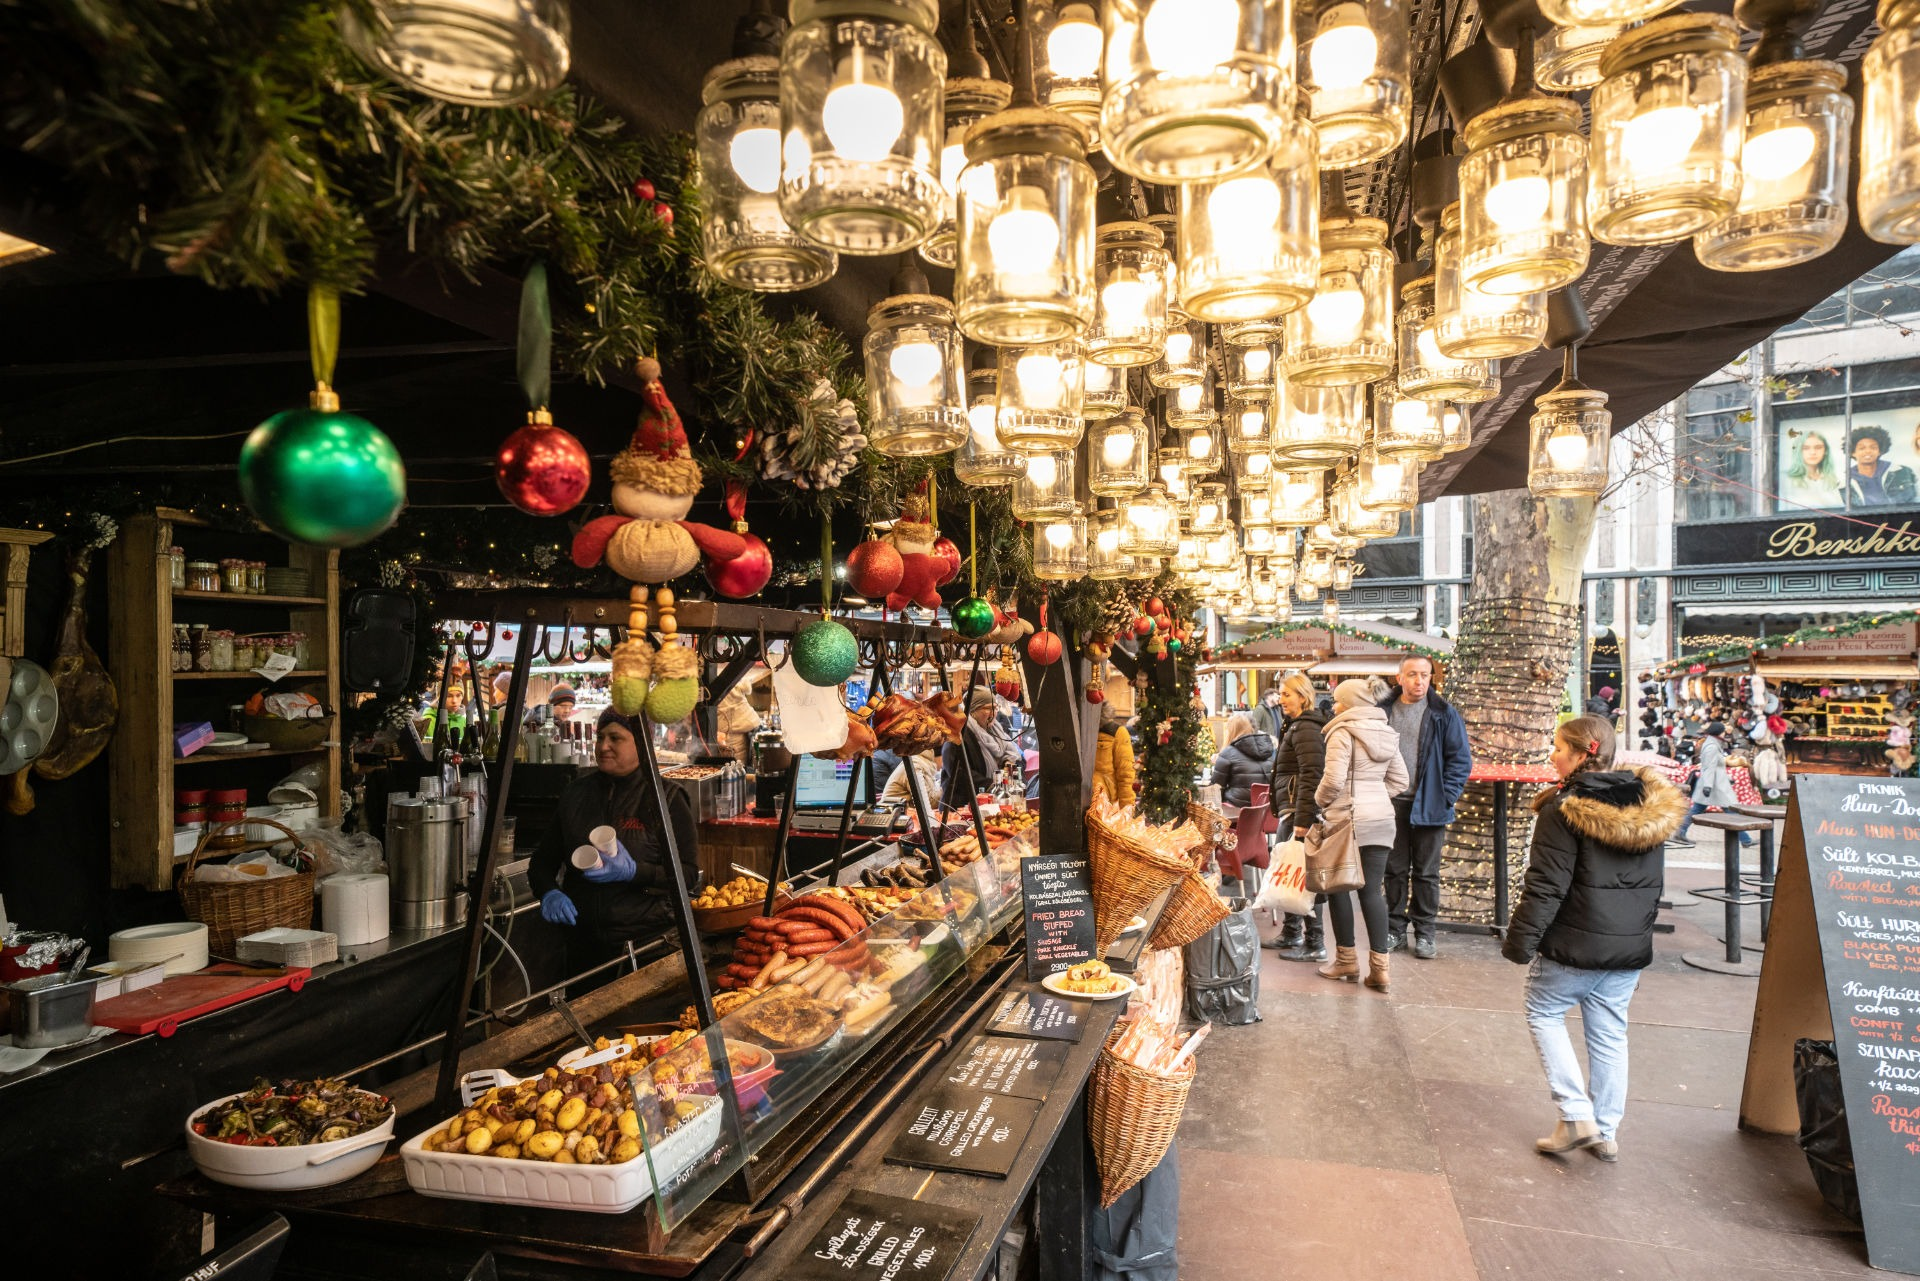 Budapest, Hungary - December 2017: Hungarian street food at the